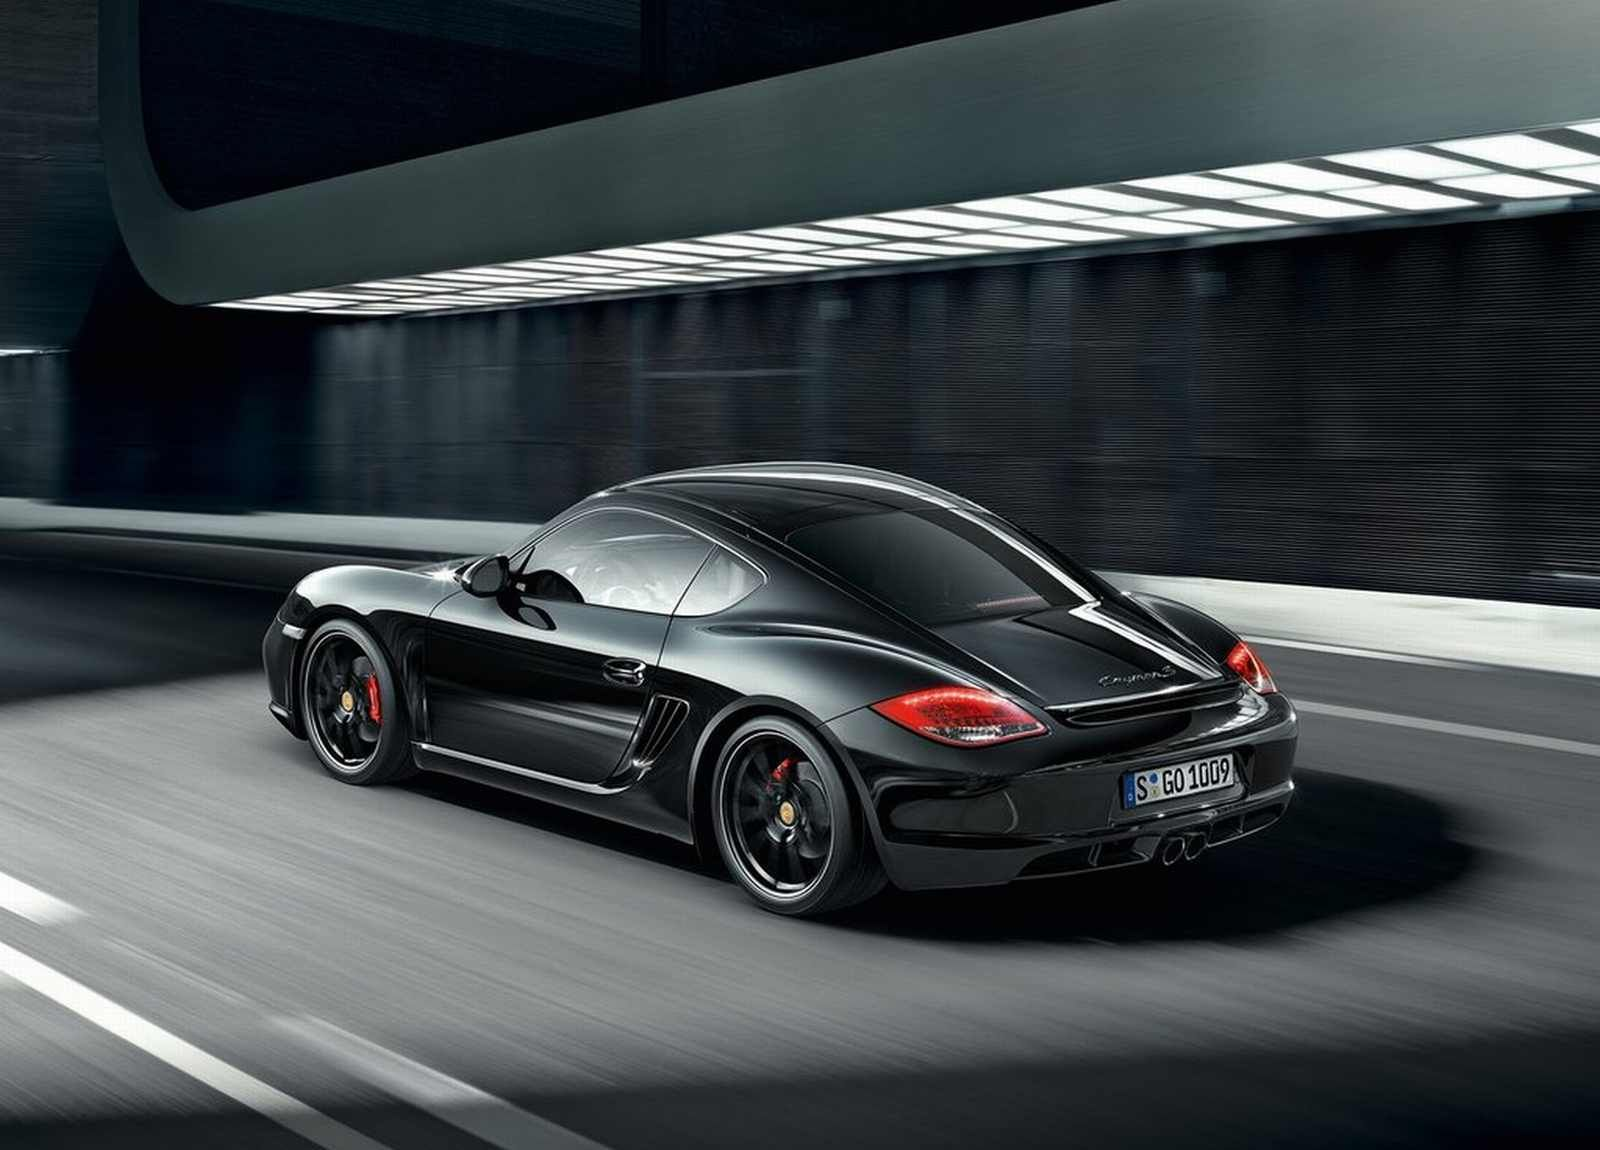 My Heart Is Loyal To Bmw And It S Unlikely I Ll Ever Own Any Other Brand As My Daily Driver But The Porsche Cayman Makes Me Porsche Cayman S Cayman S